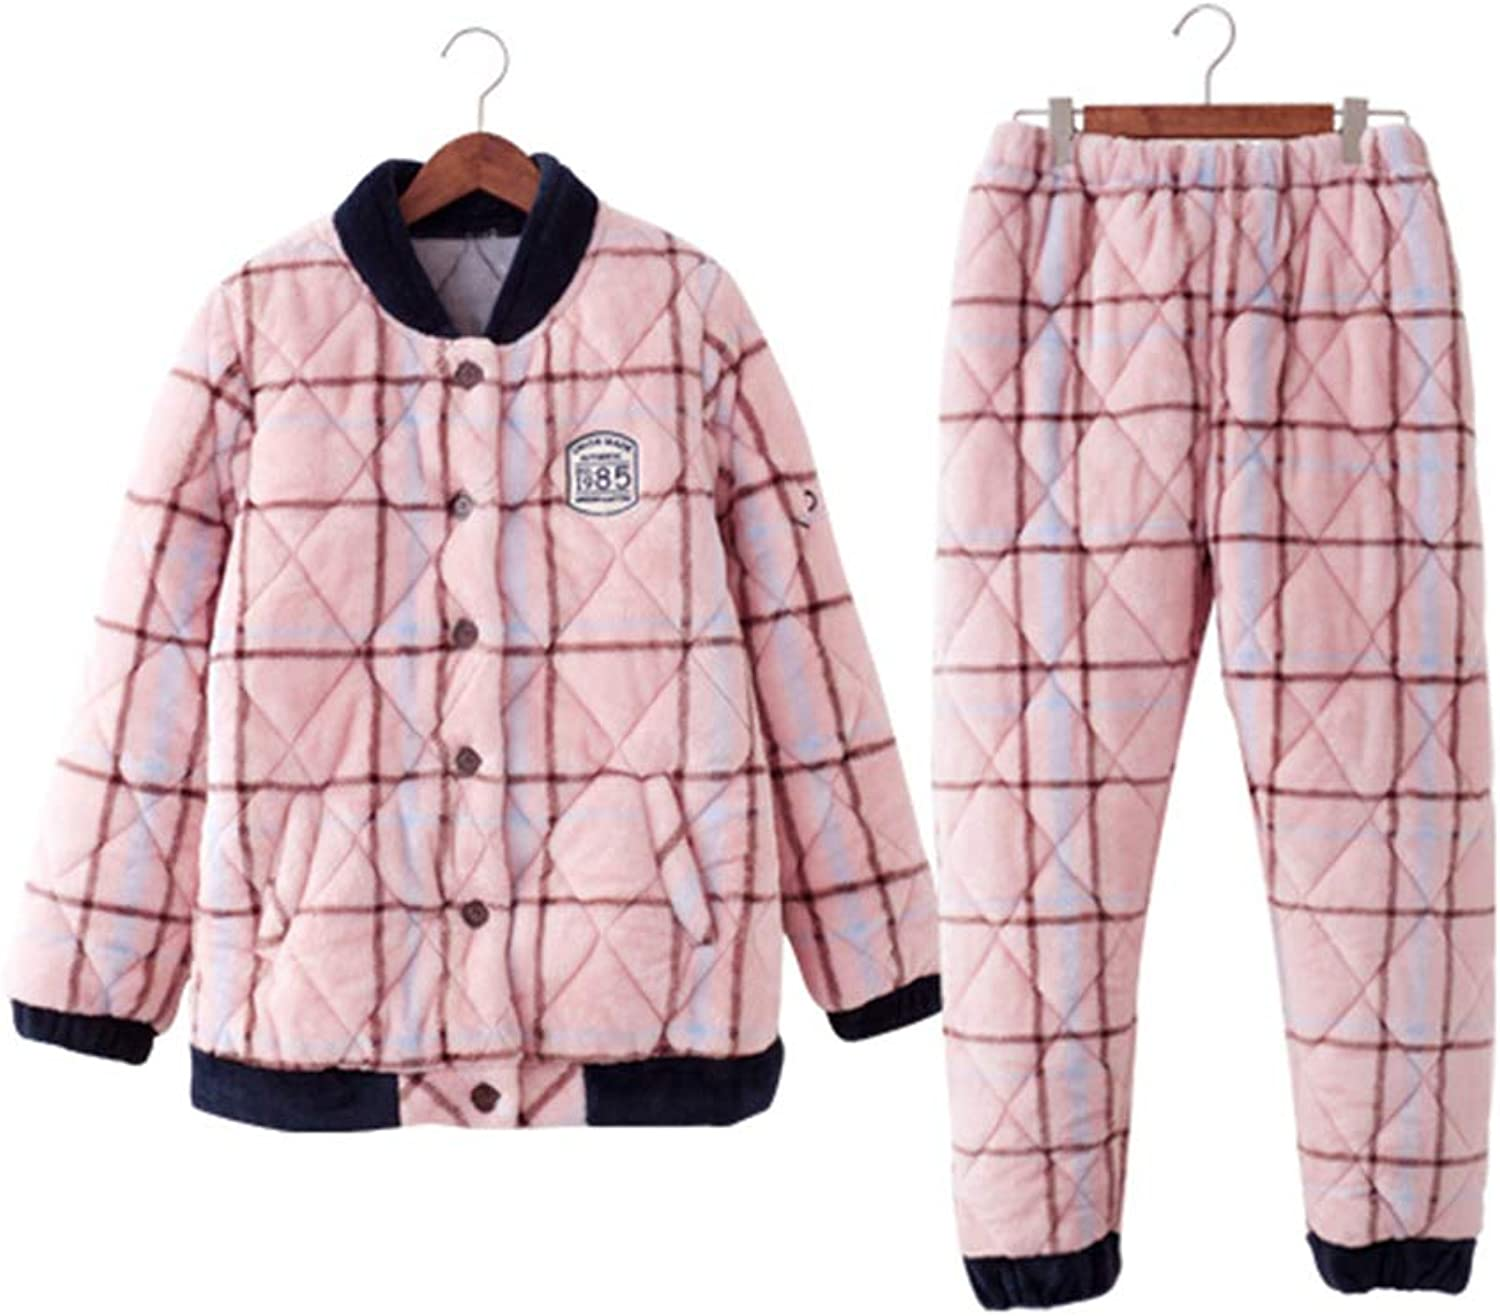 Nightgowns Pajamas Thickening Autumn and Winter Coral Velvet Quilted Couple Fashion Female LongSleeved Home Service Suit Pink Plaid Gift (color   Pink, Size   L)